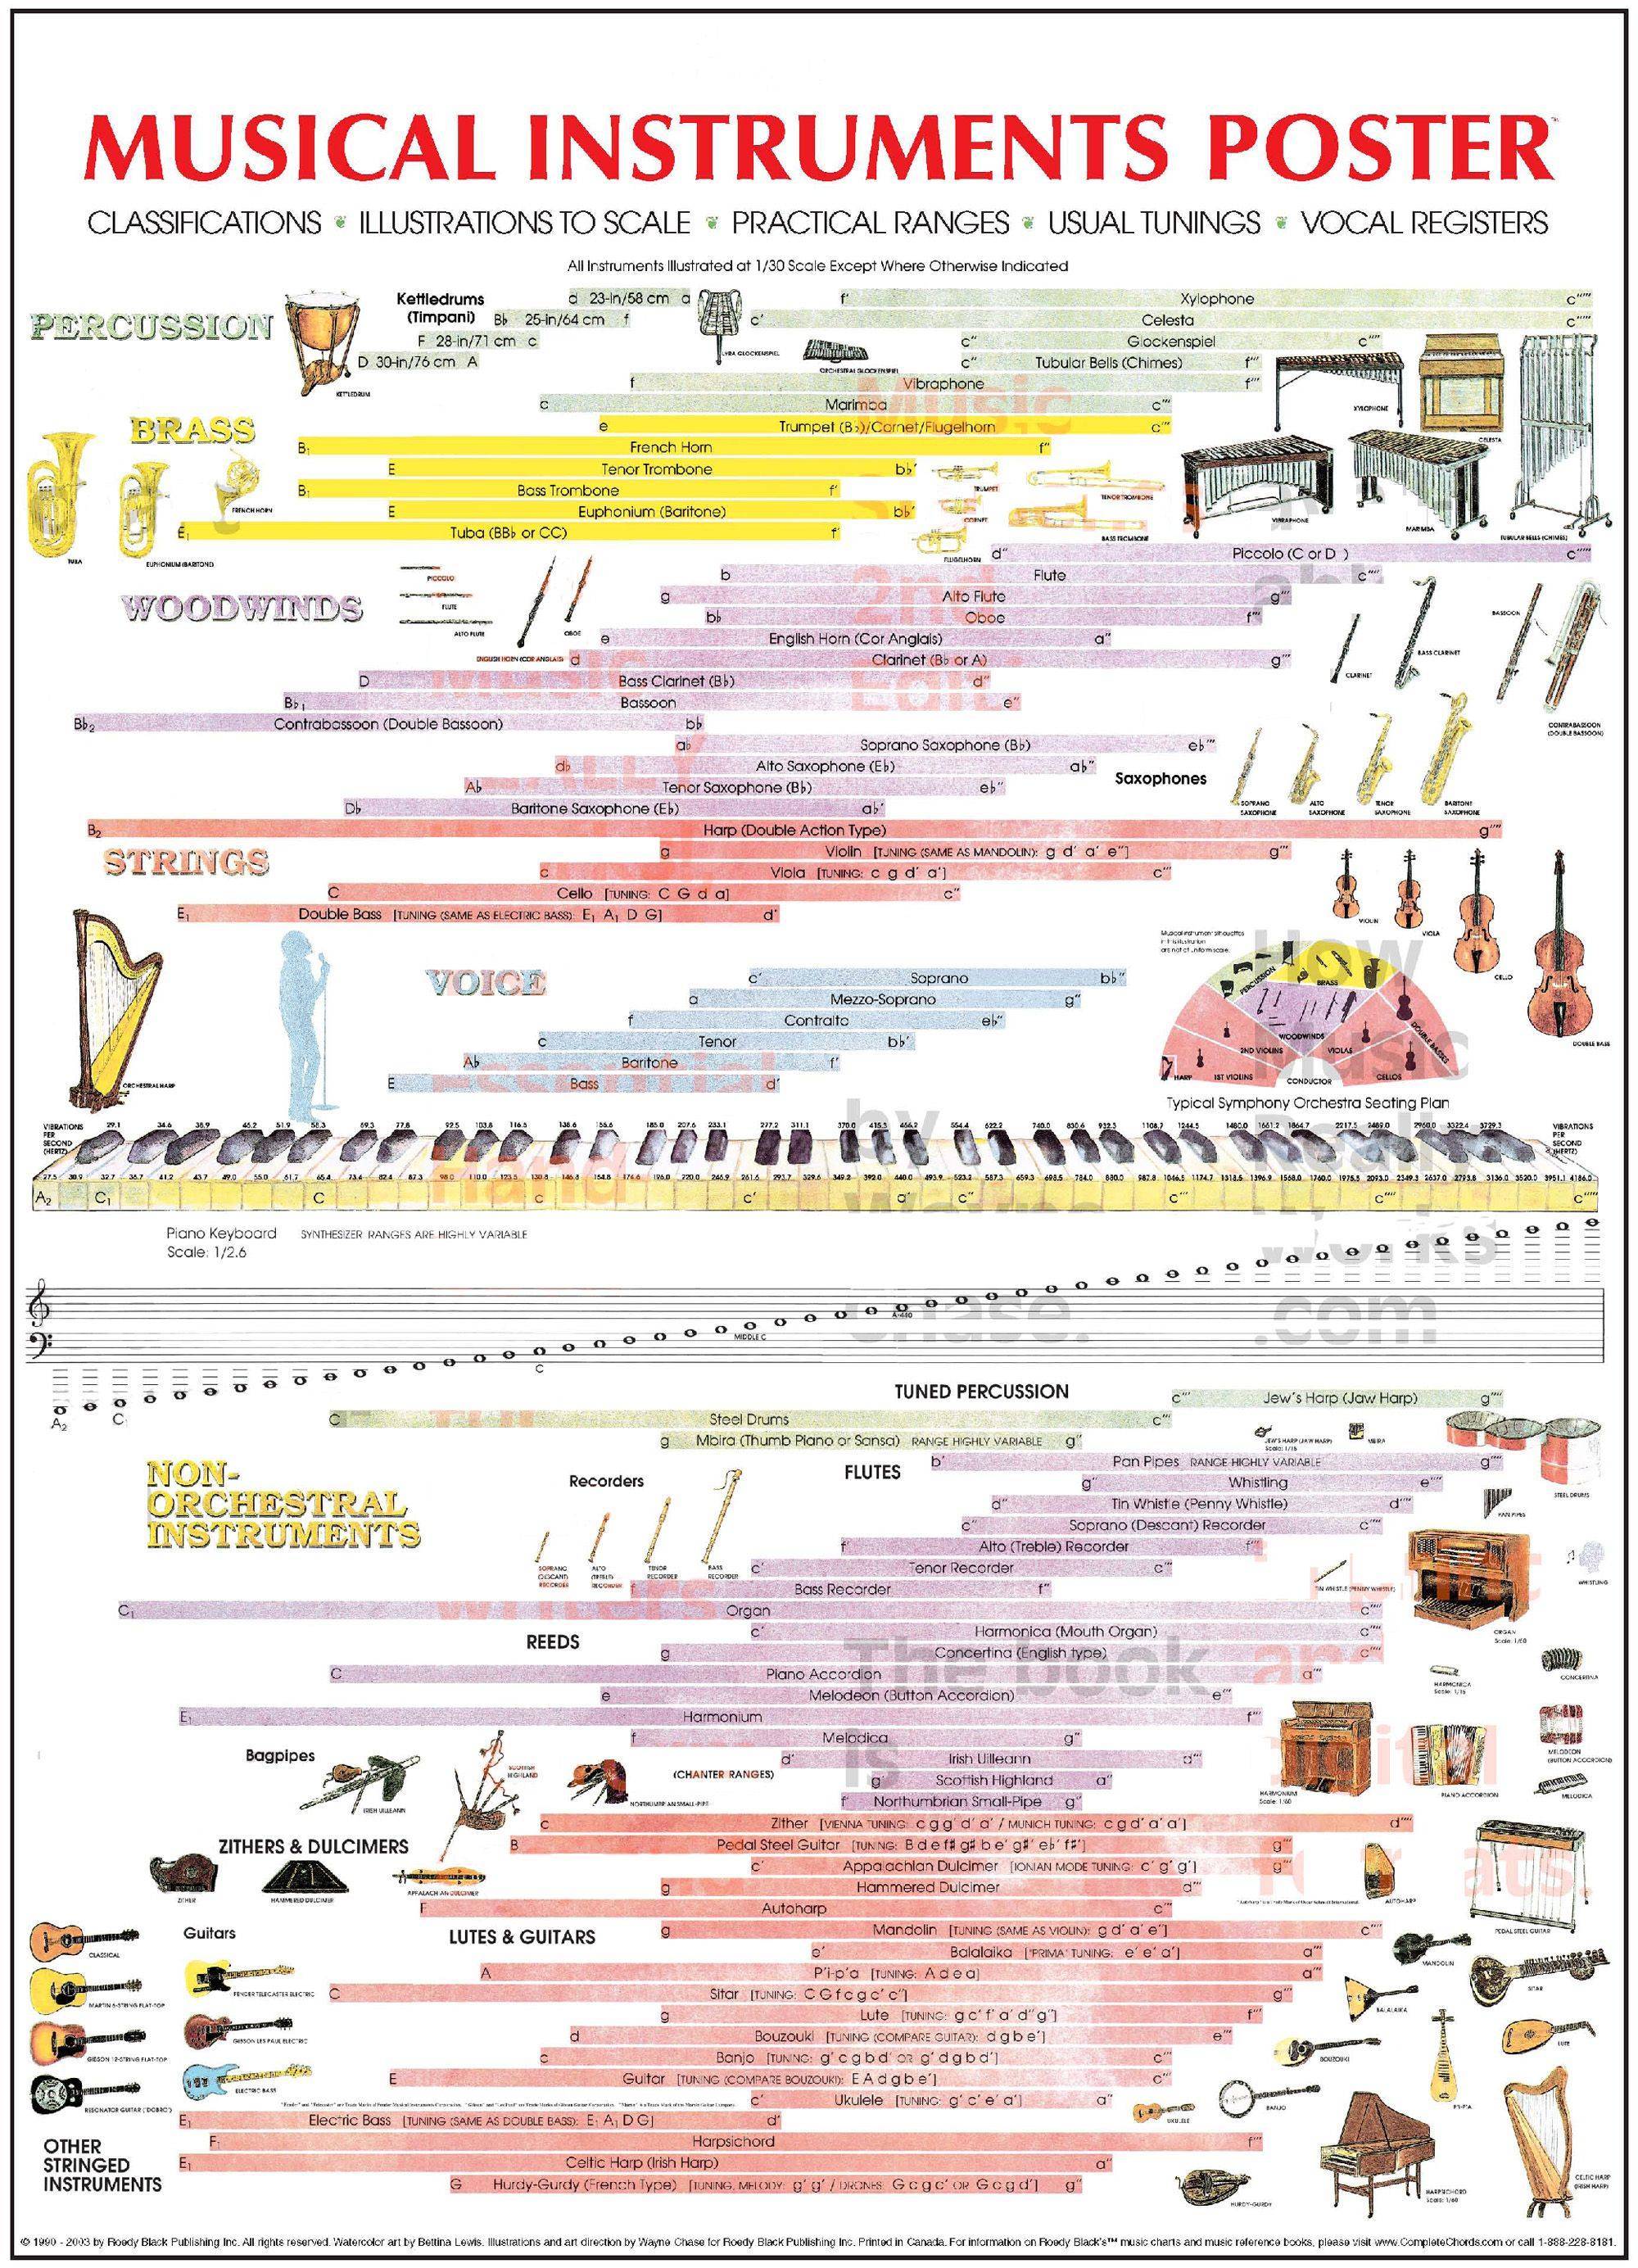 Musical Instruments Pitch Range Chart The Human Voice From Low Bass To  High Soprano Covers